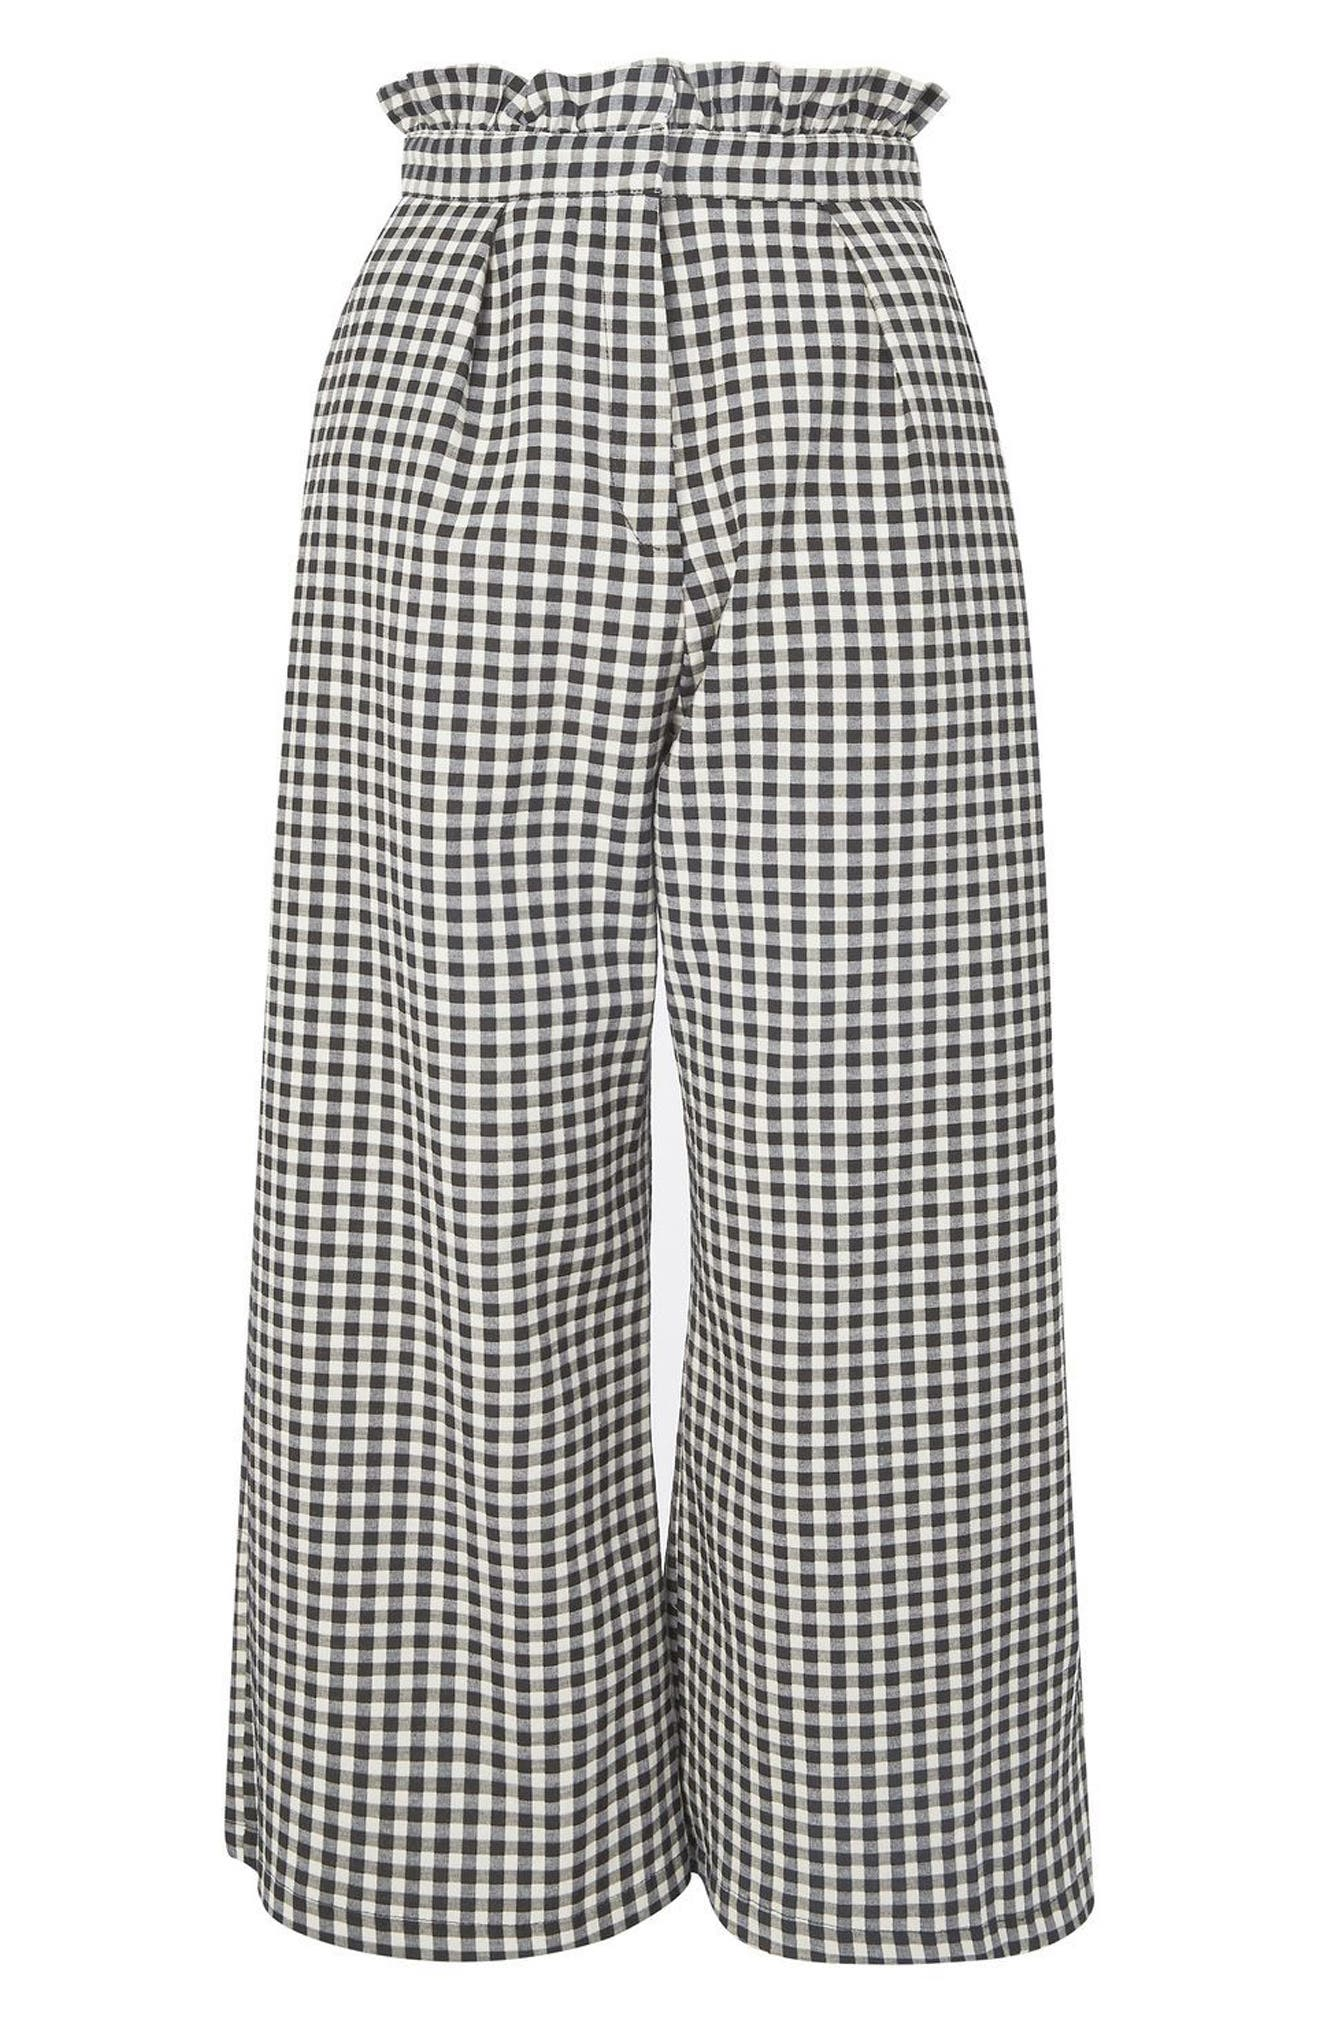 Topshop Ruffle Trim Gingham Trousers (Regular & Petite)